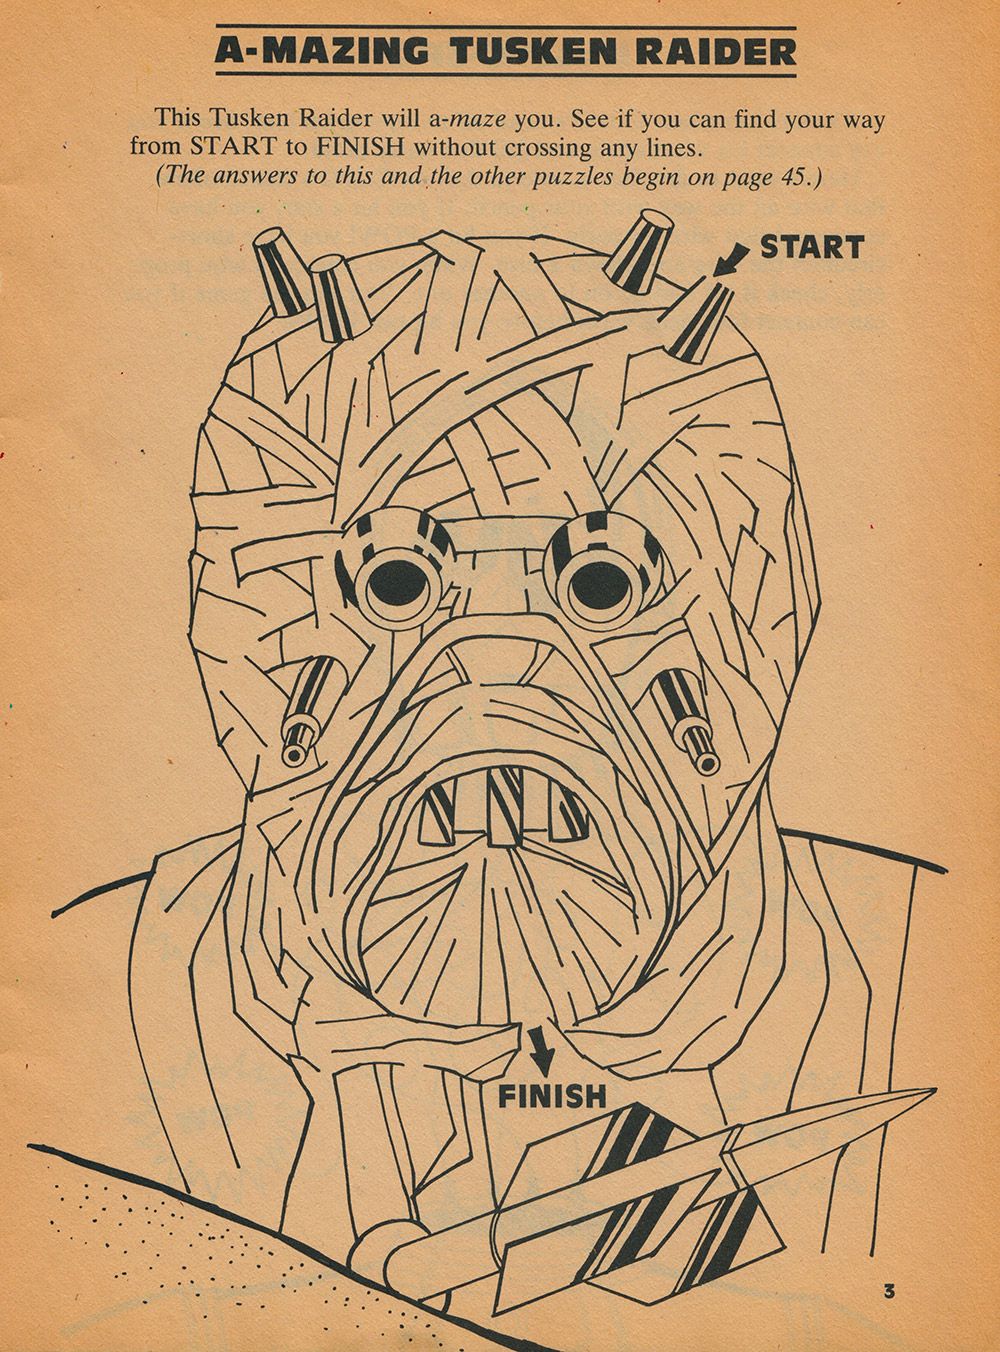 Return of the Jedi - Things to Do and Make A-Mazing Tusken Raider